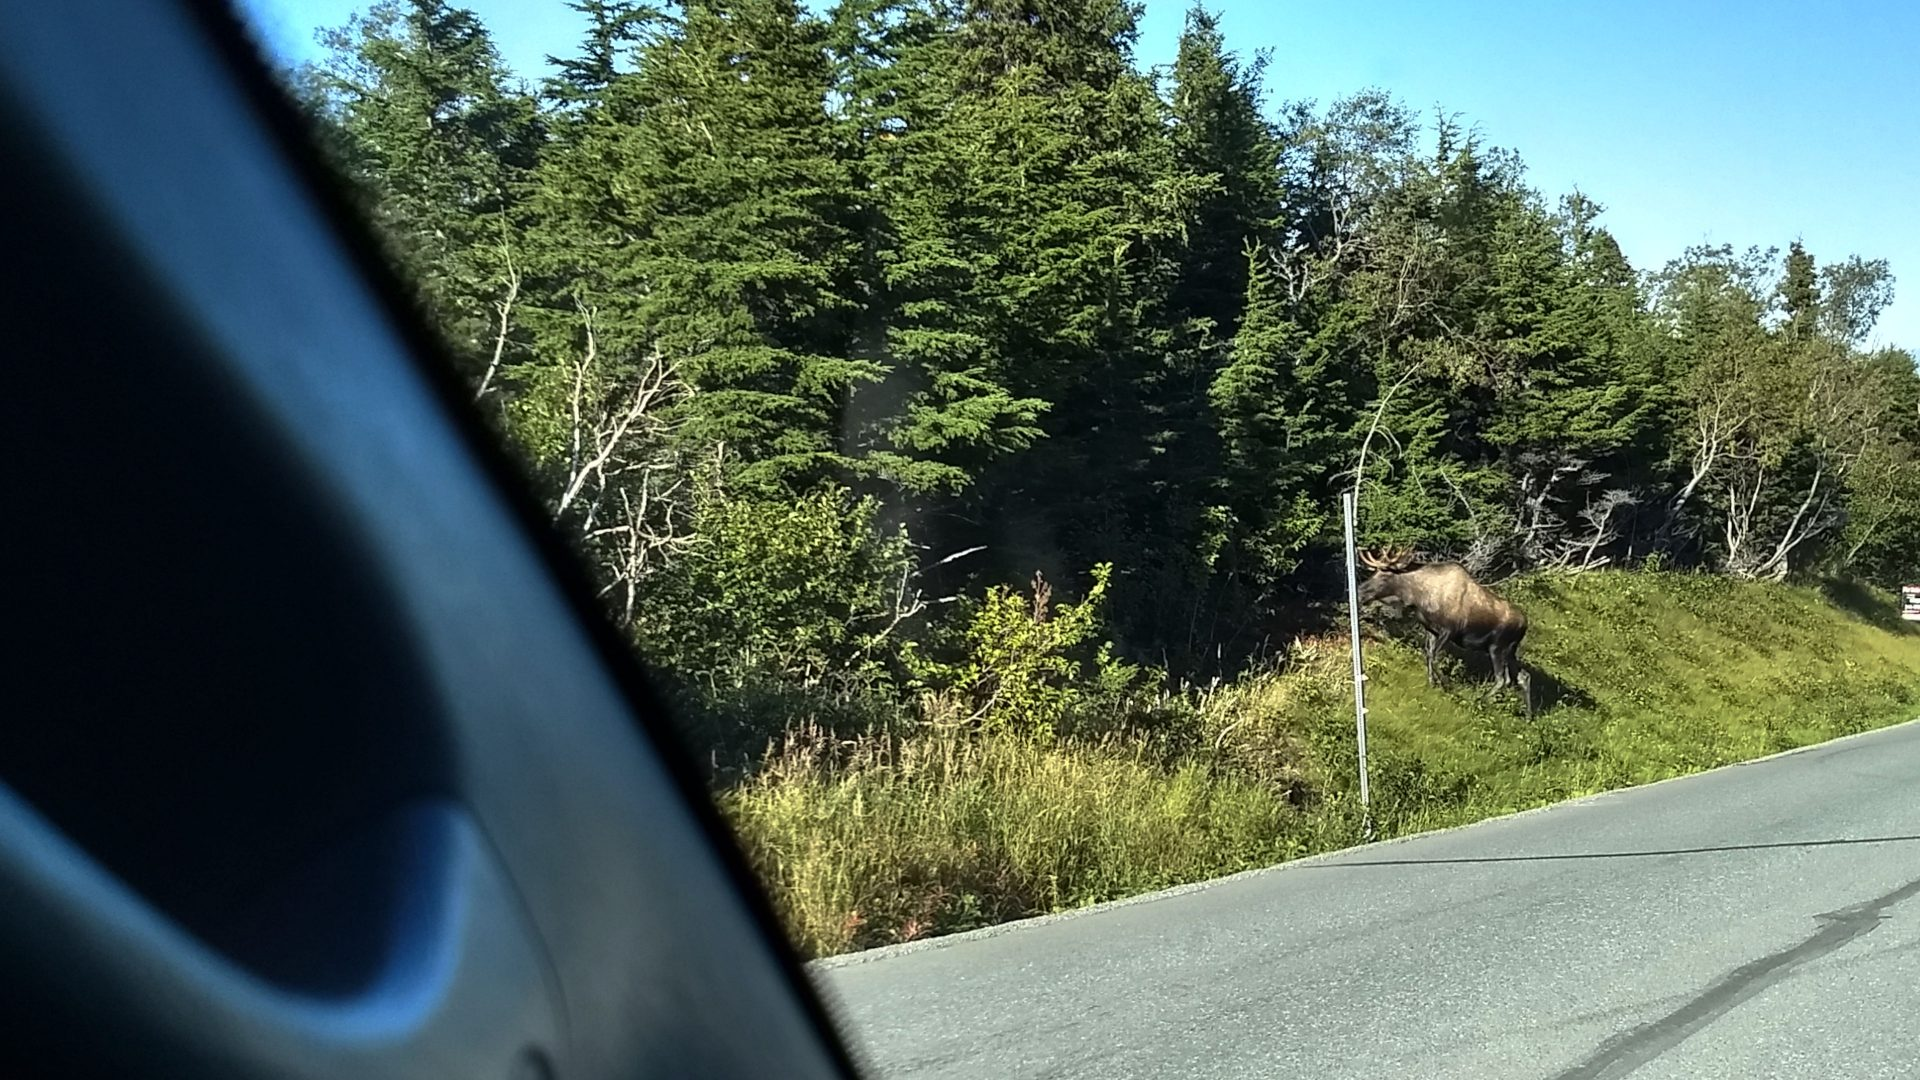 Moose on the side of the road